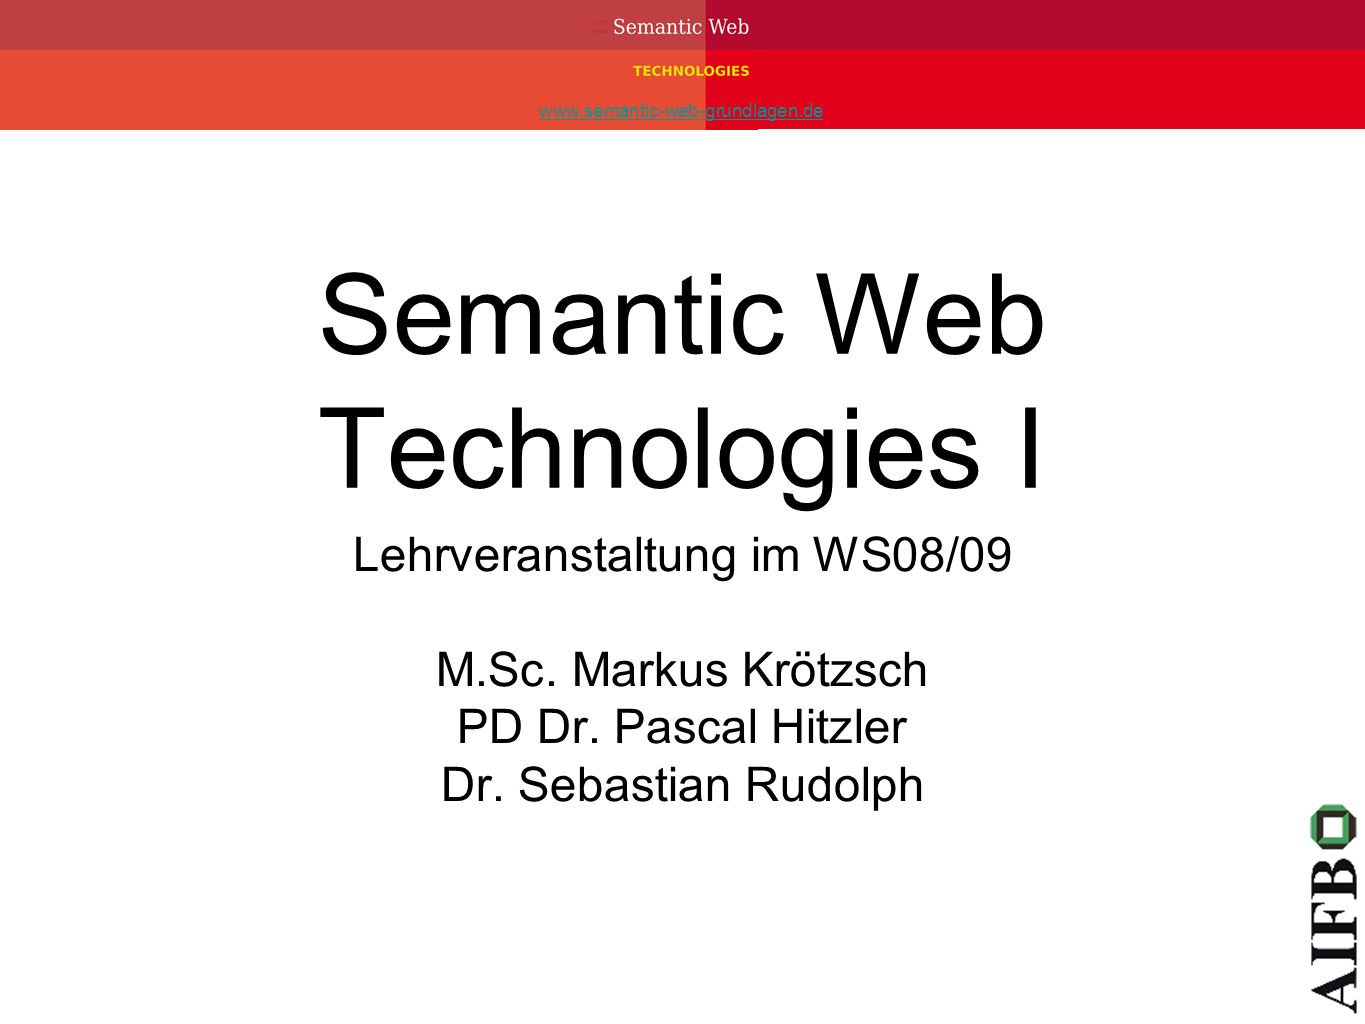 Semantic Web Technologies I